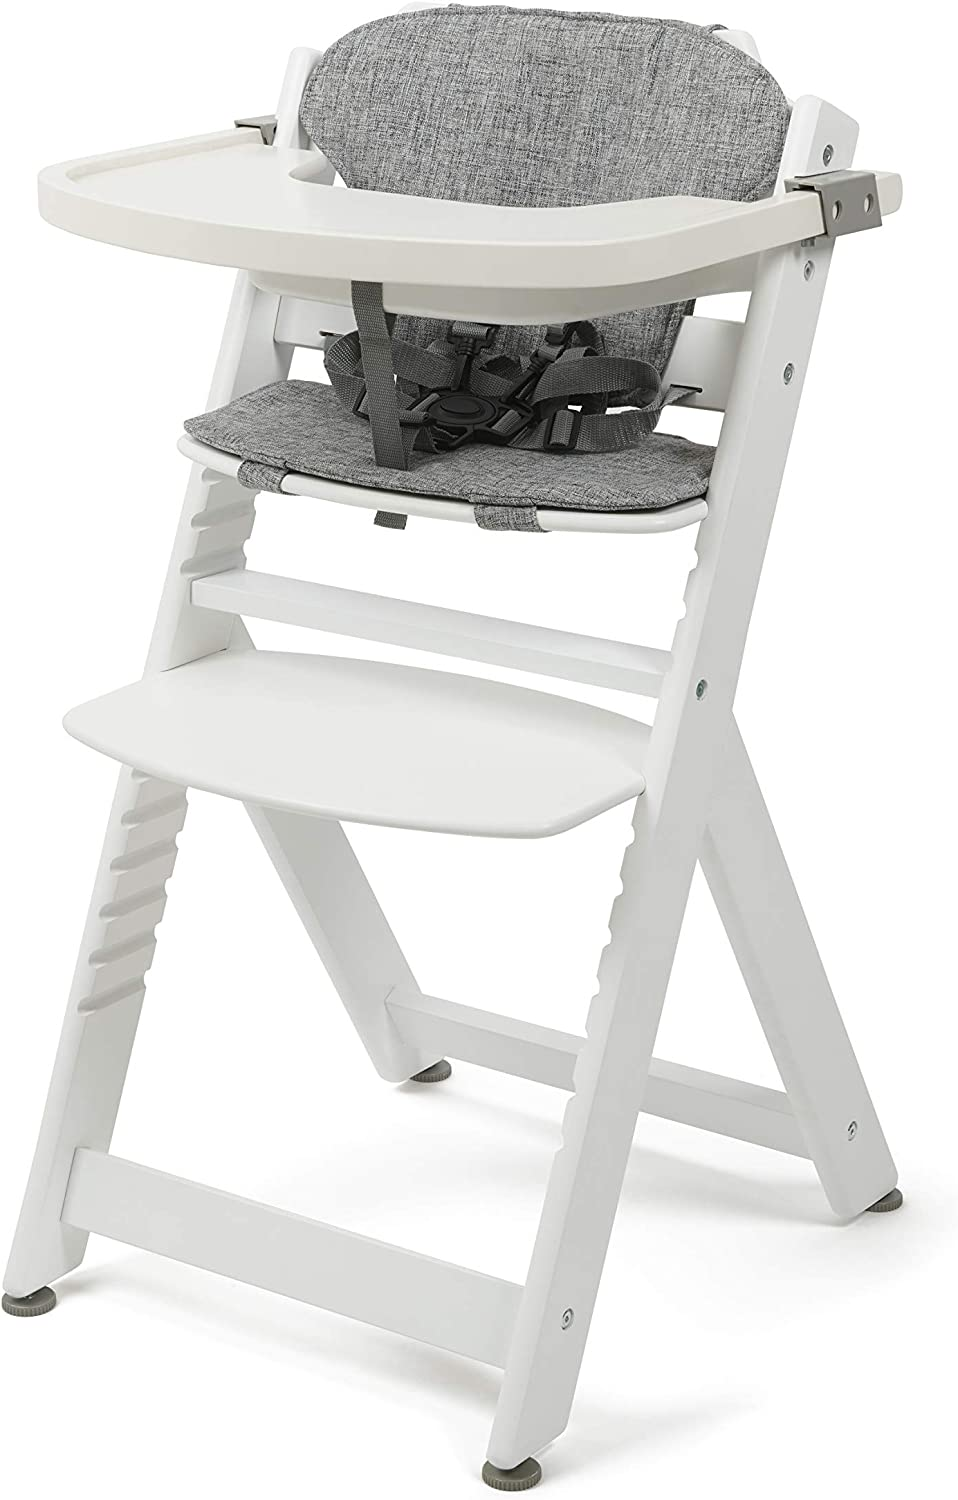 with Free Comfy seat Liner White BABYLO Grow with Me Wooden Highchair